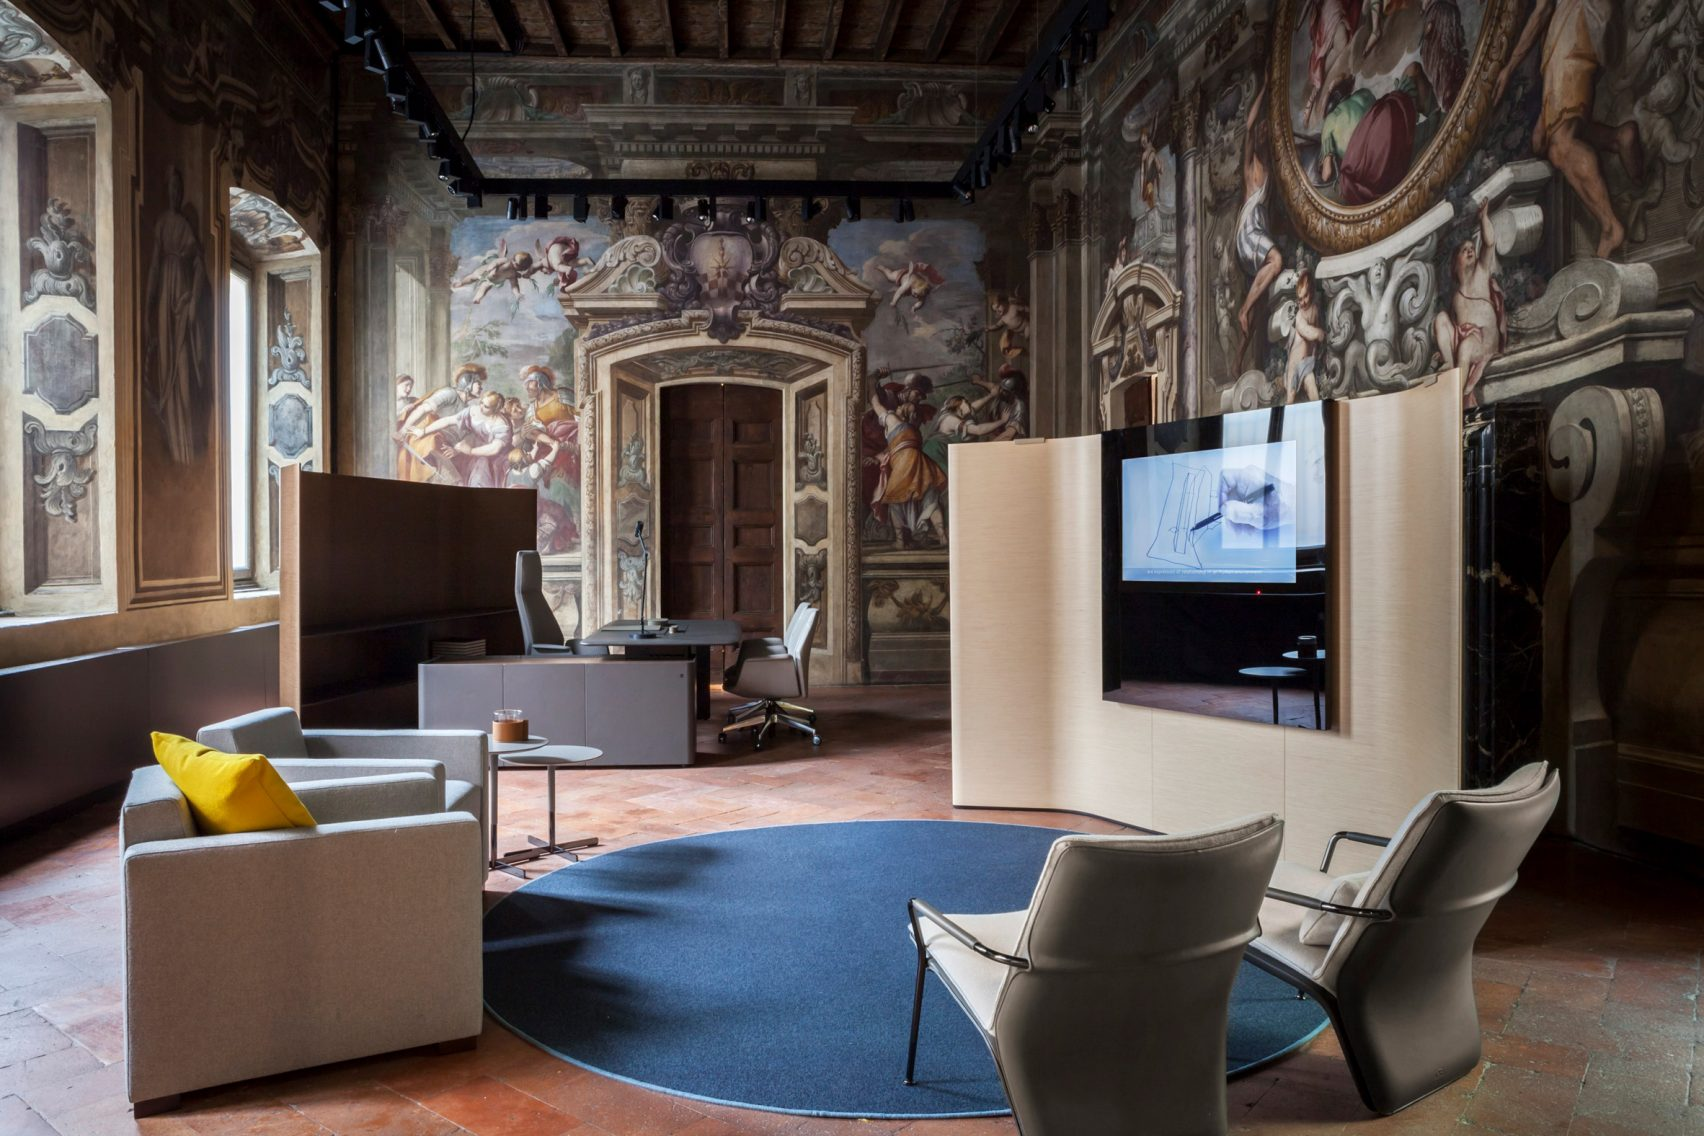 Poltrona Frau's flagship store is housed within an old Milanese building